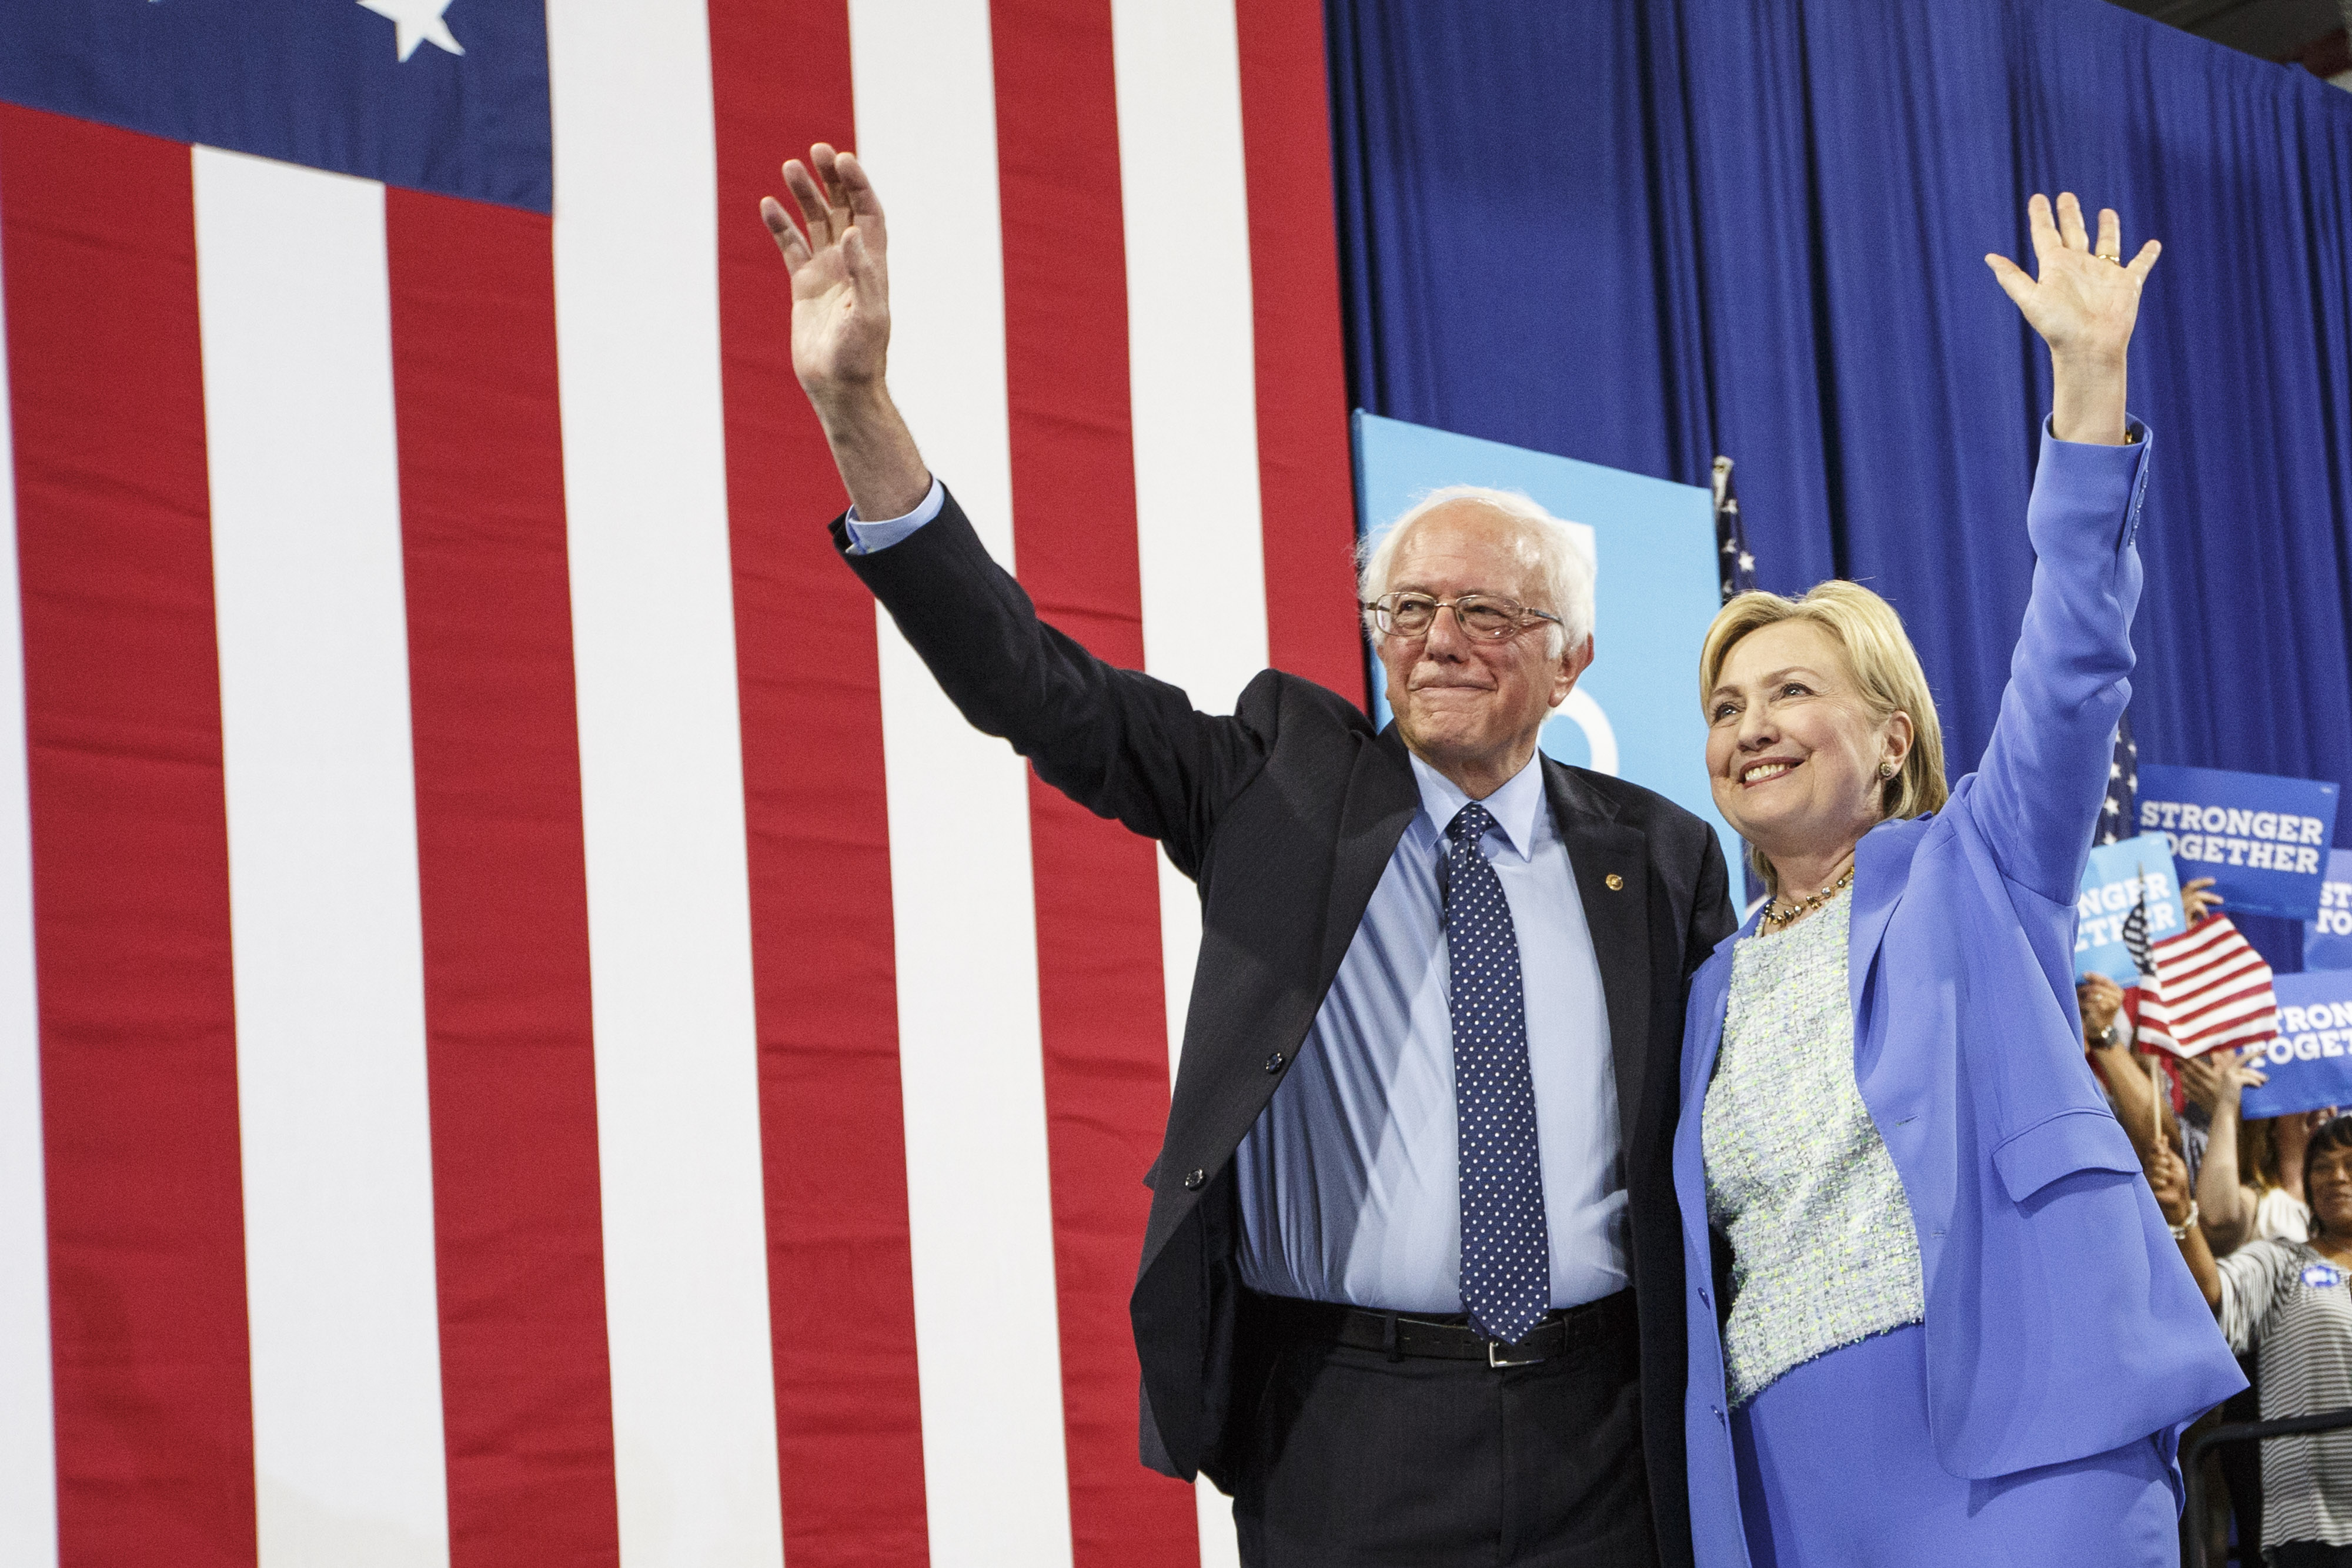 Presidential candidate Hillary Clinton and U.S. Senator and former presidential candidate Bernie Sanders wave from the stage during a campaign event in Portsmouth, N.H., July 12, 2016, in which Sanders endorsed Clinton.